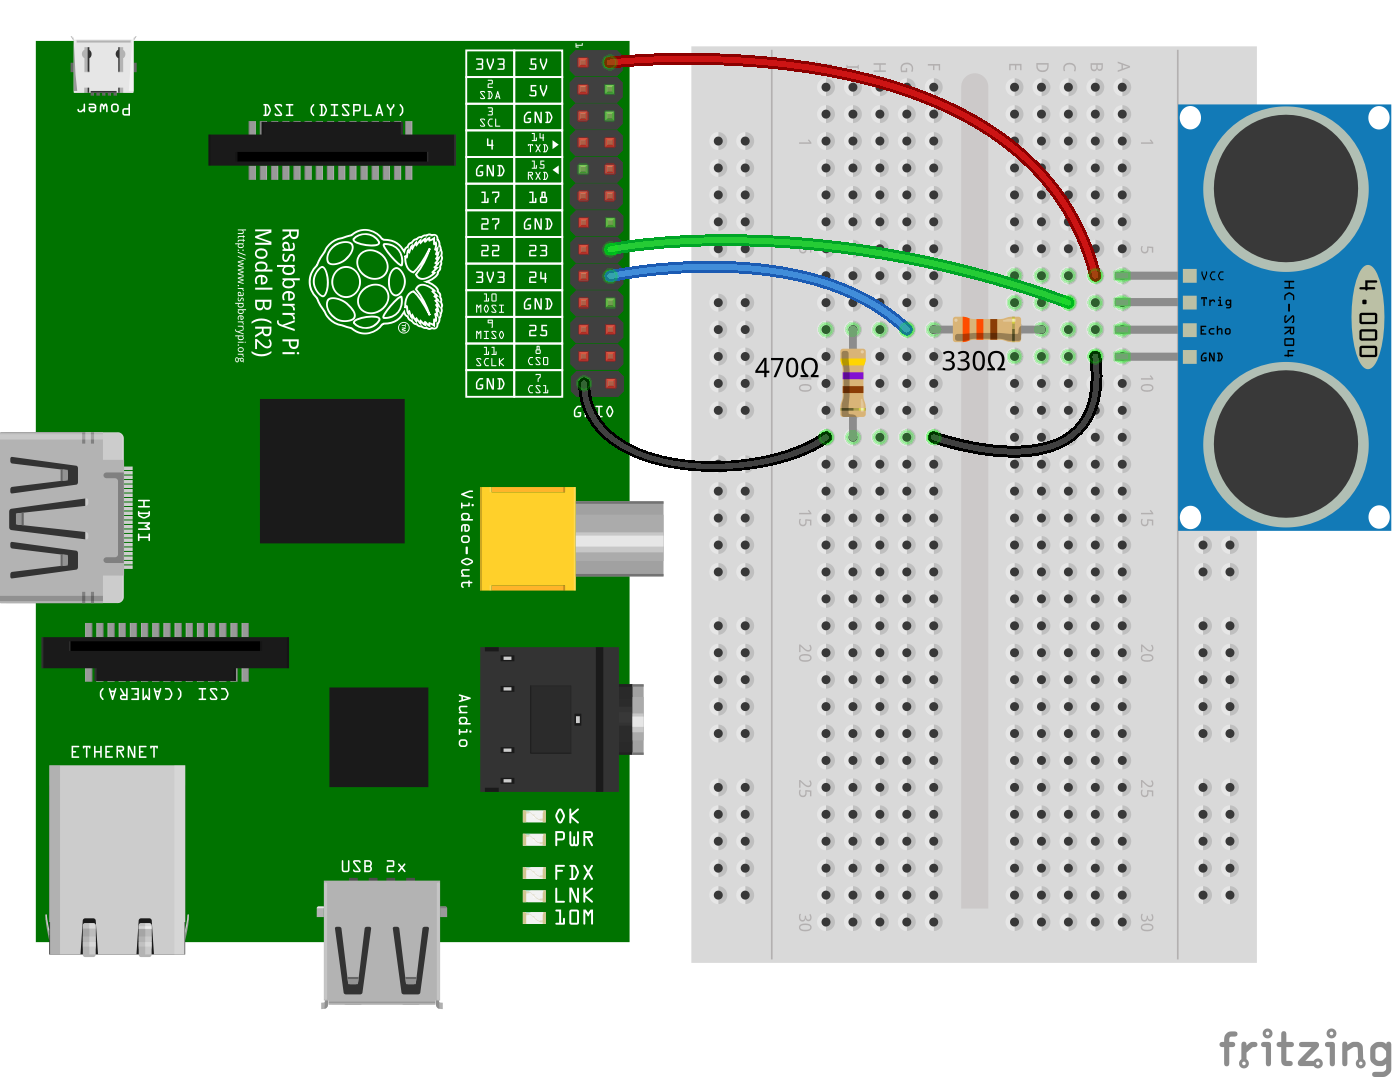 Github Fivdi Pigpio Fast Gpio Pwm Servo Control State Change Wiringpi H Functions 2 The Number Of Microseconds It Takes Sound To Travel 1cm At 20 Degrees Celcius Const Microsecdonds Per Cm 1e6 34321 Trigger New Gpio23